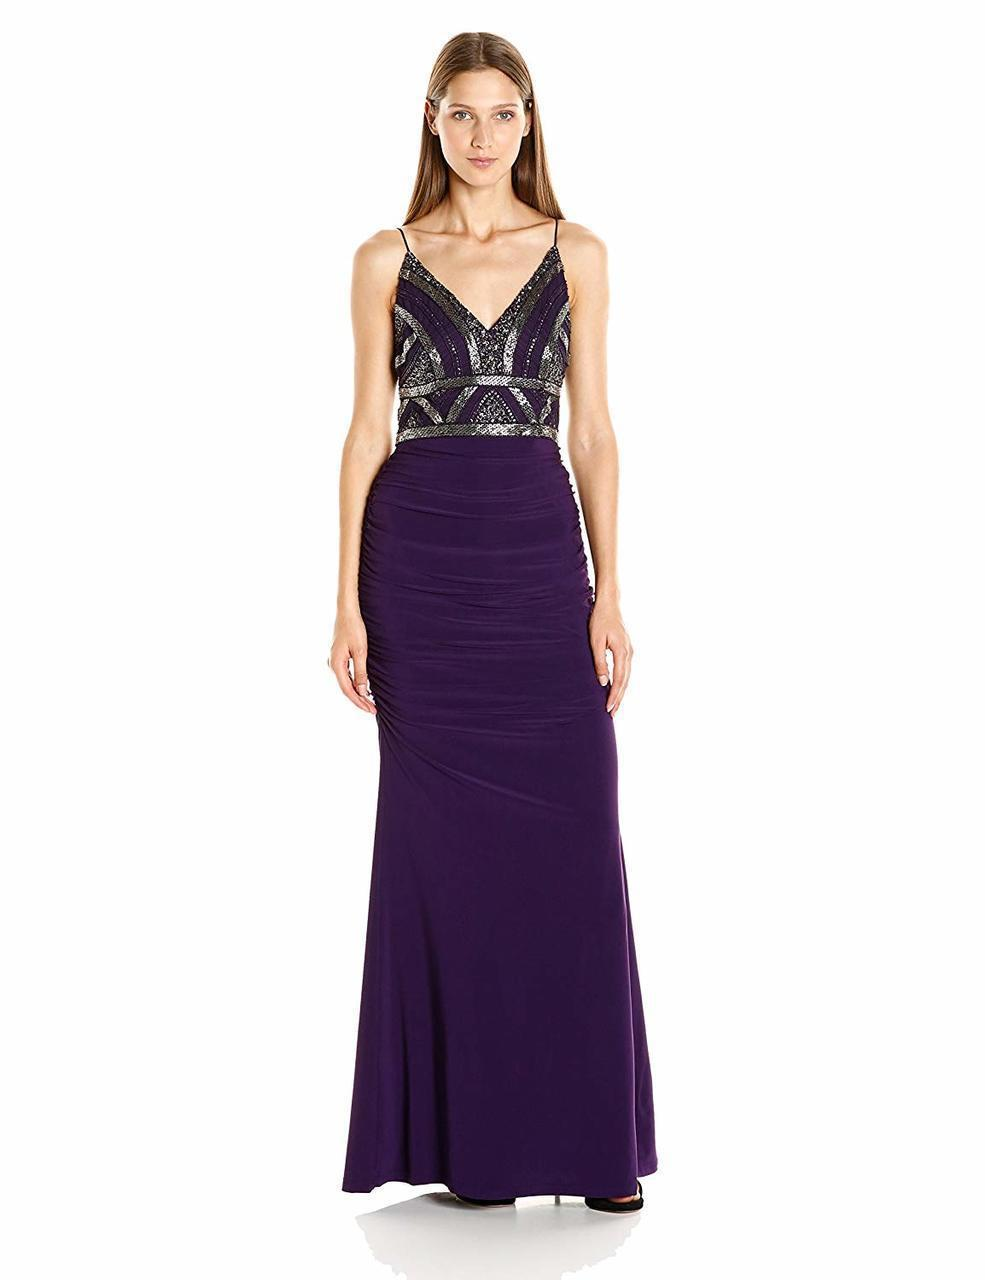 c5b1dc75 Adrianna Papell. Women's Purple Ap1e200204 Embellished V-neck Ruched Sheath  Dress. $458 $229 From Couture Candy